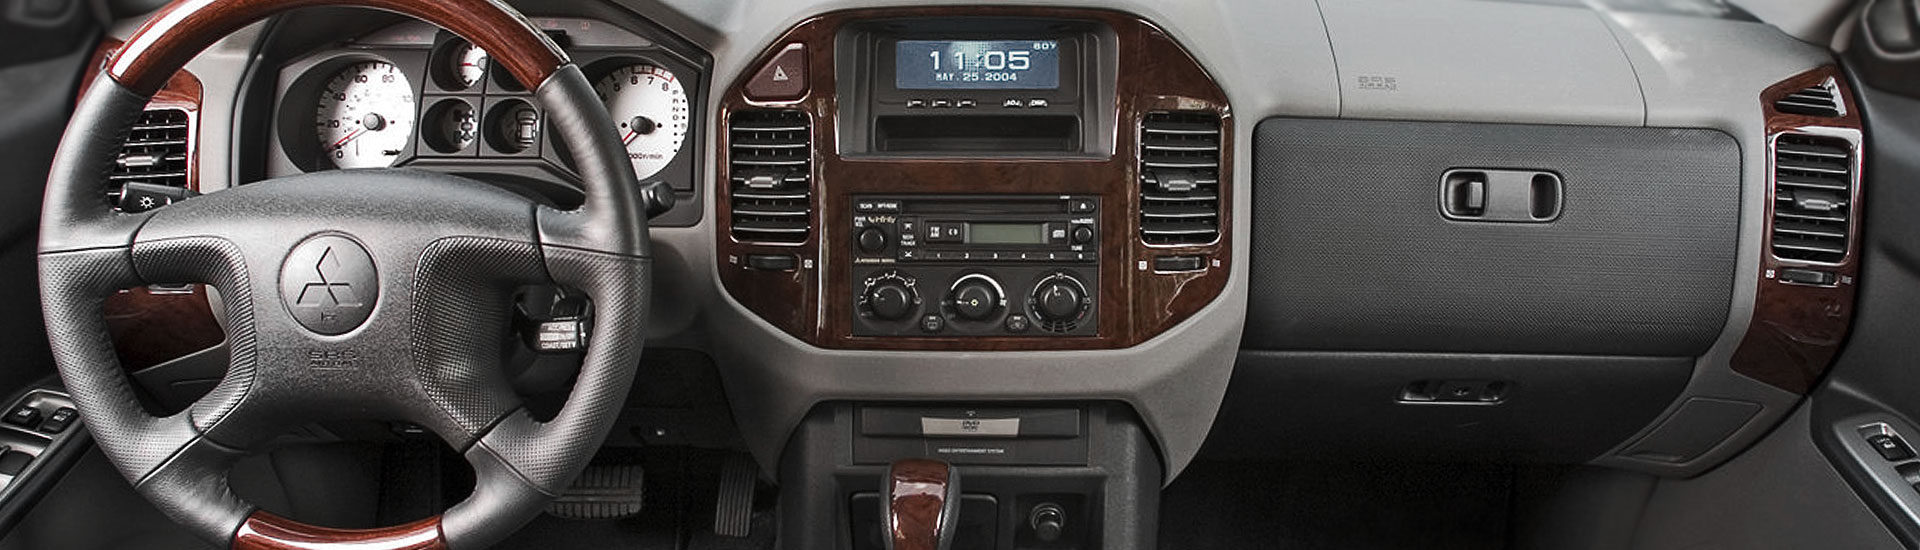 1993 Mitsubishi Eclipse Custom Dash Kits